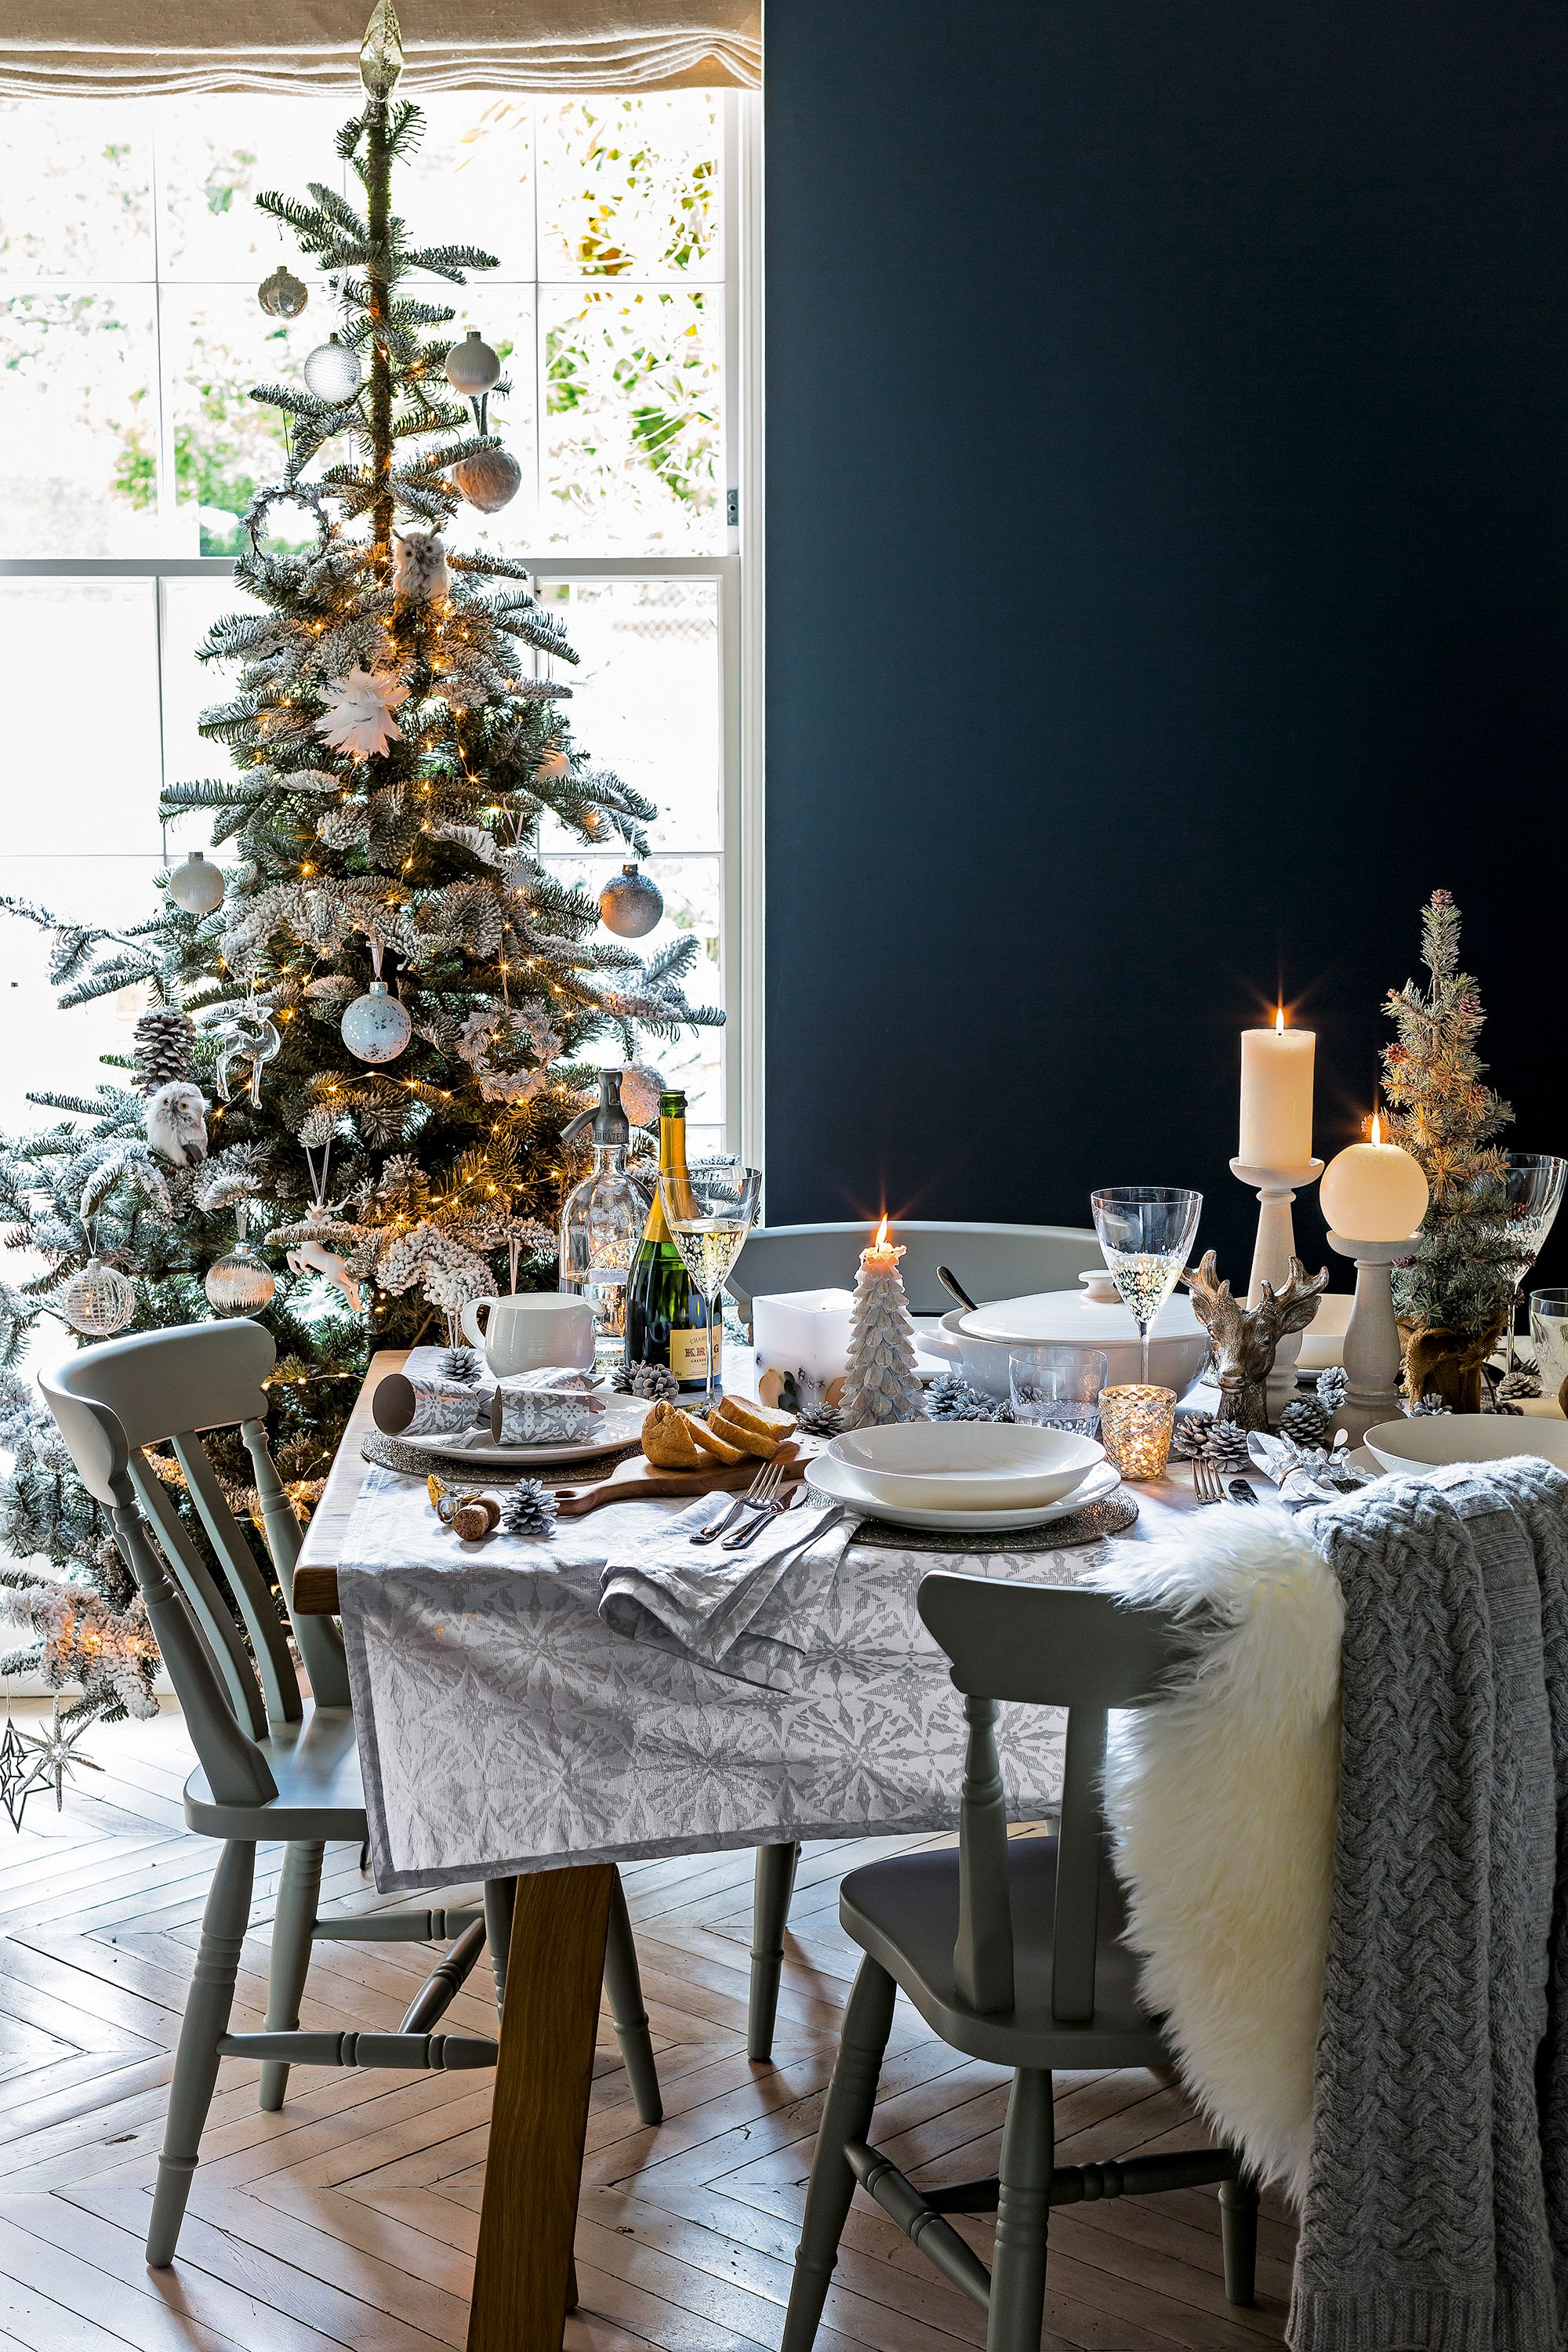 Get your Christmas day decor inspiration from